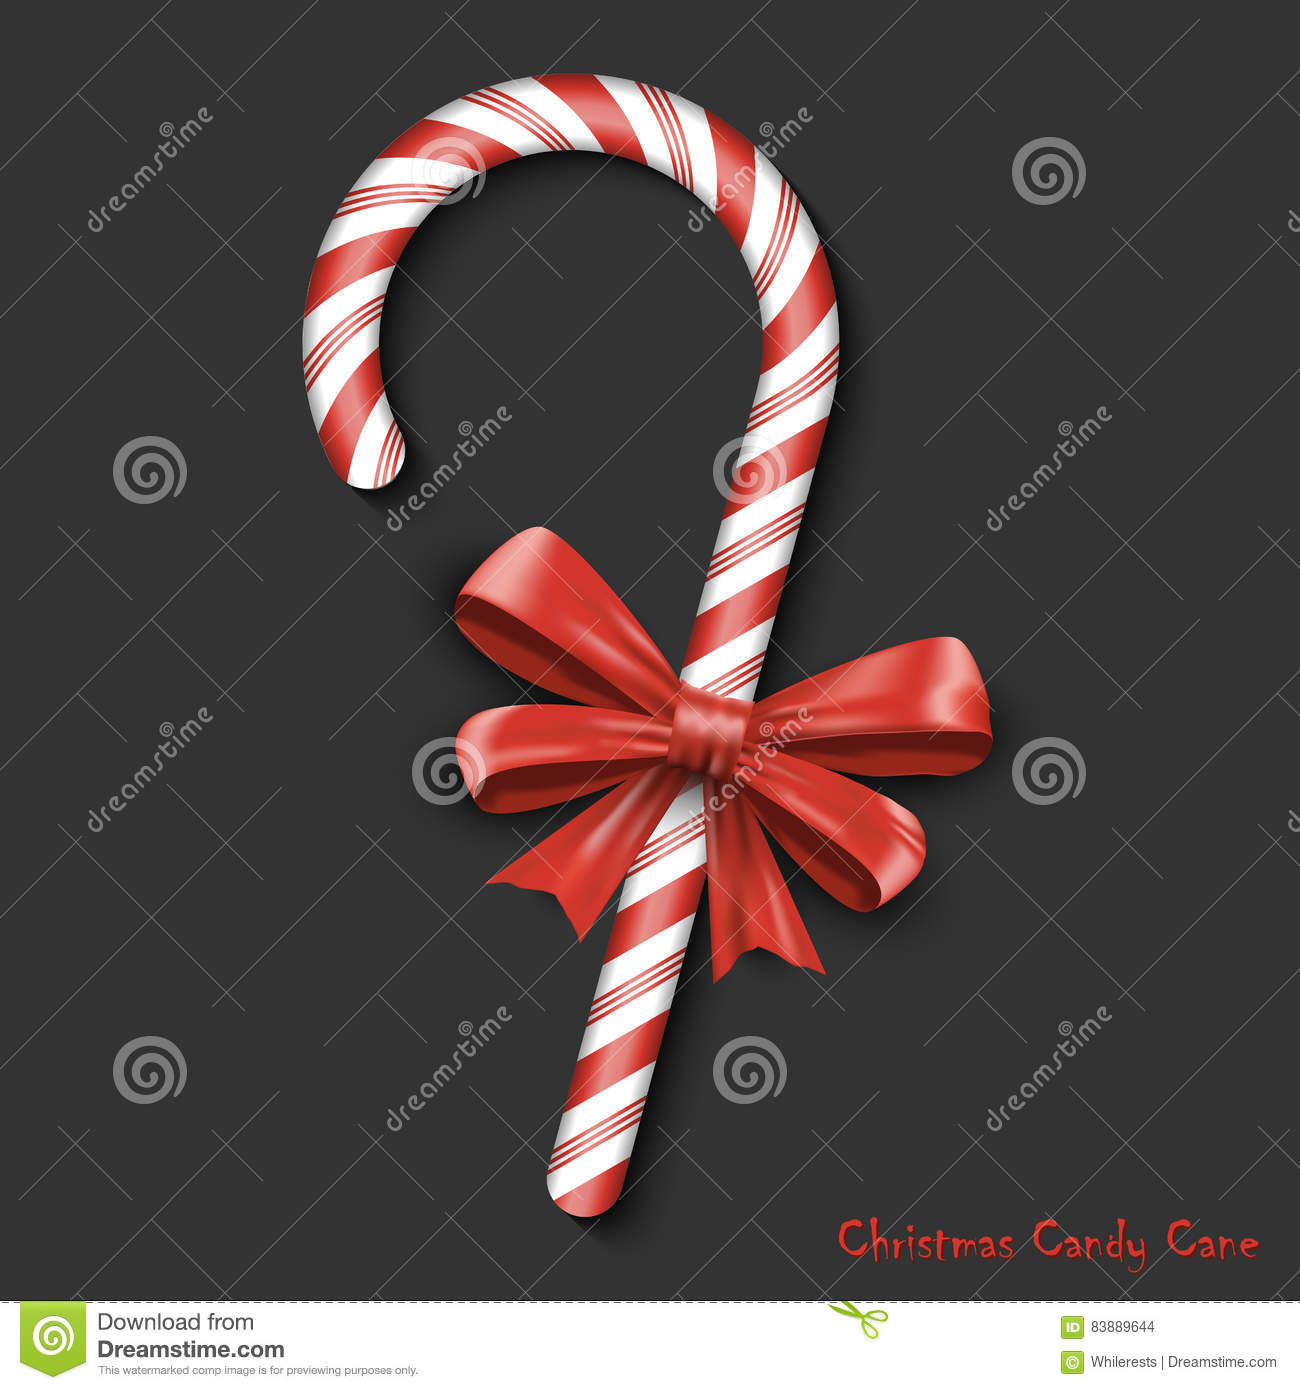 Merry Christmas Greetings In Realistic 3d Red Candy Cane On Black